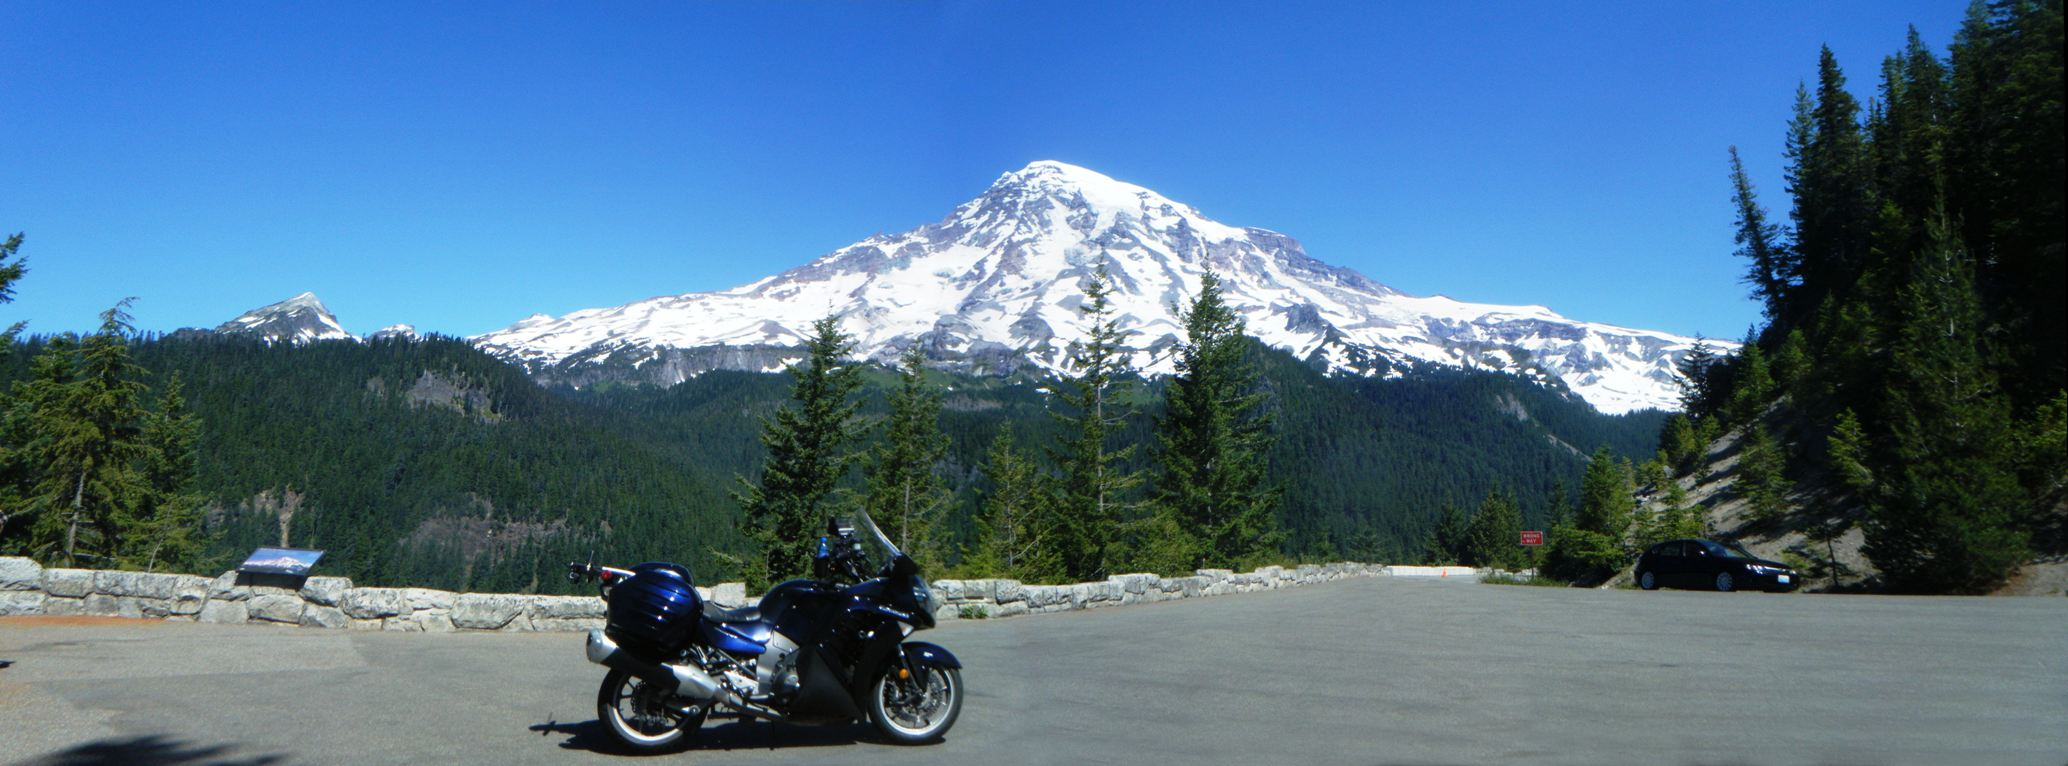 mount rainier senior dating site Welcome to the mount rainier national park information page here you will find all you need to know about the natural history of the park learn about the geology, trees, mammals, birds, or.